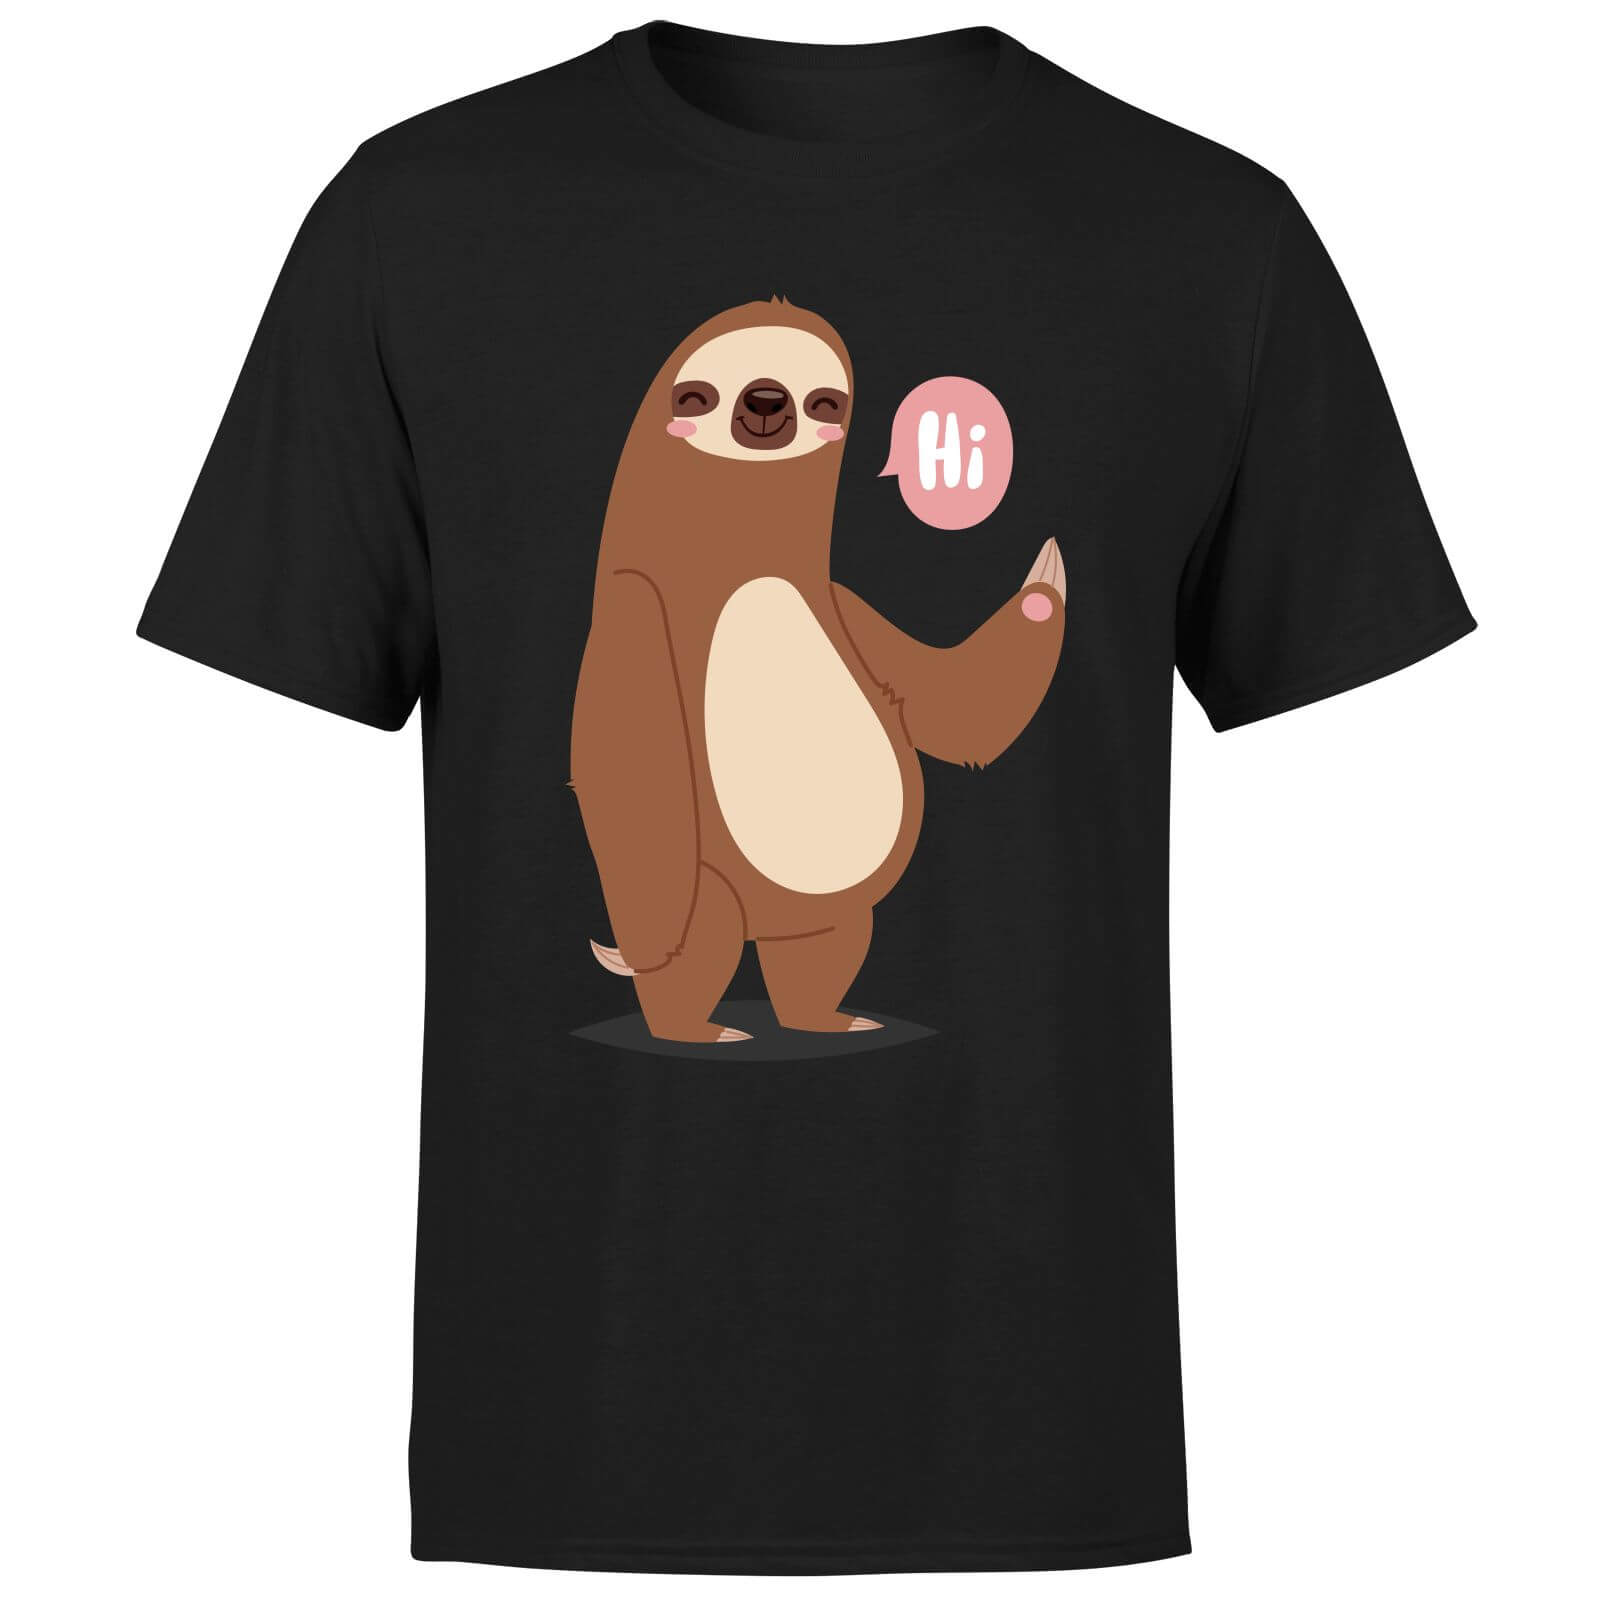 Sloth Hi T-Shirt - Black